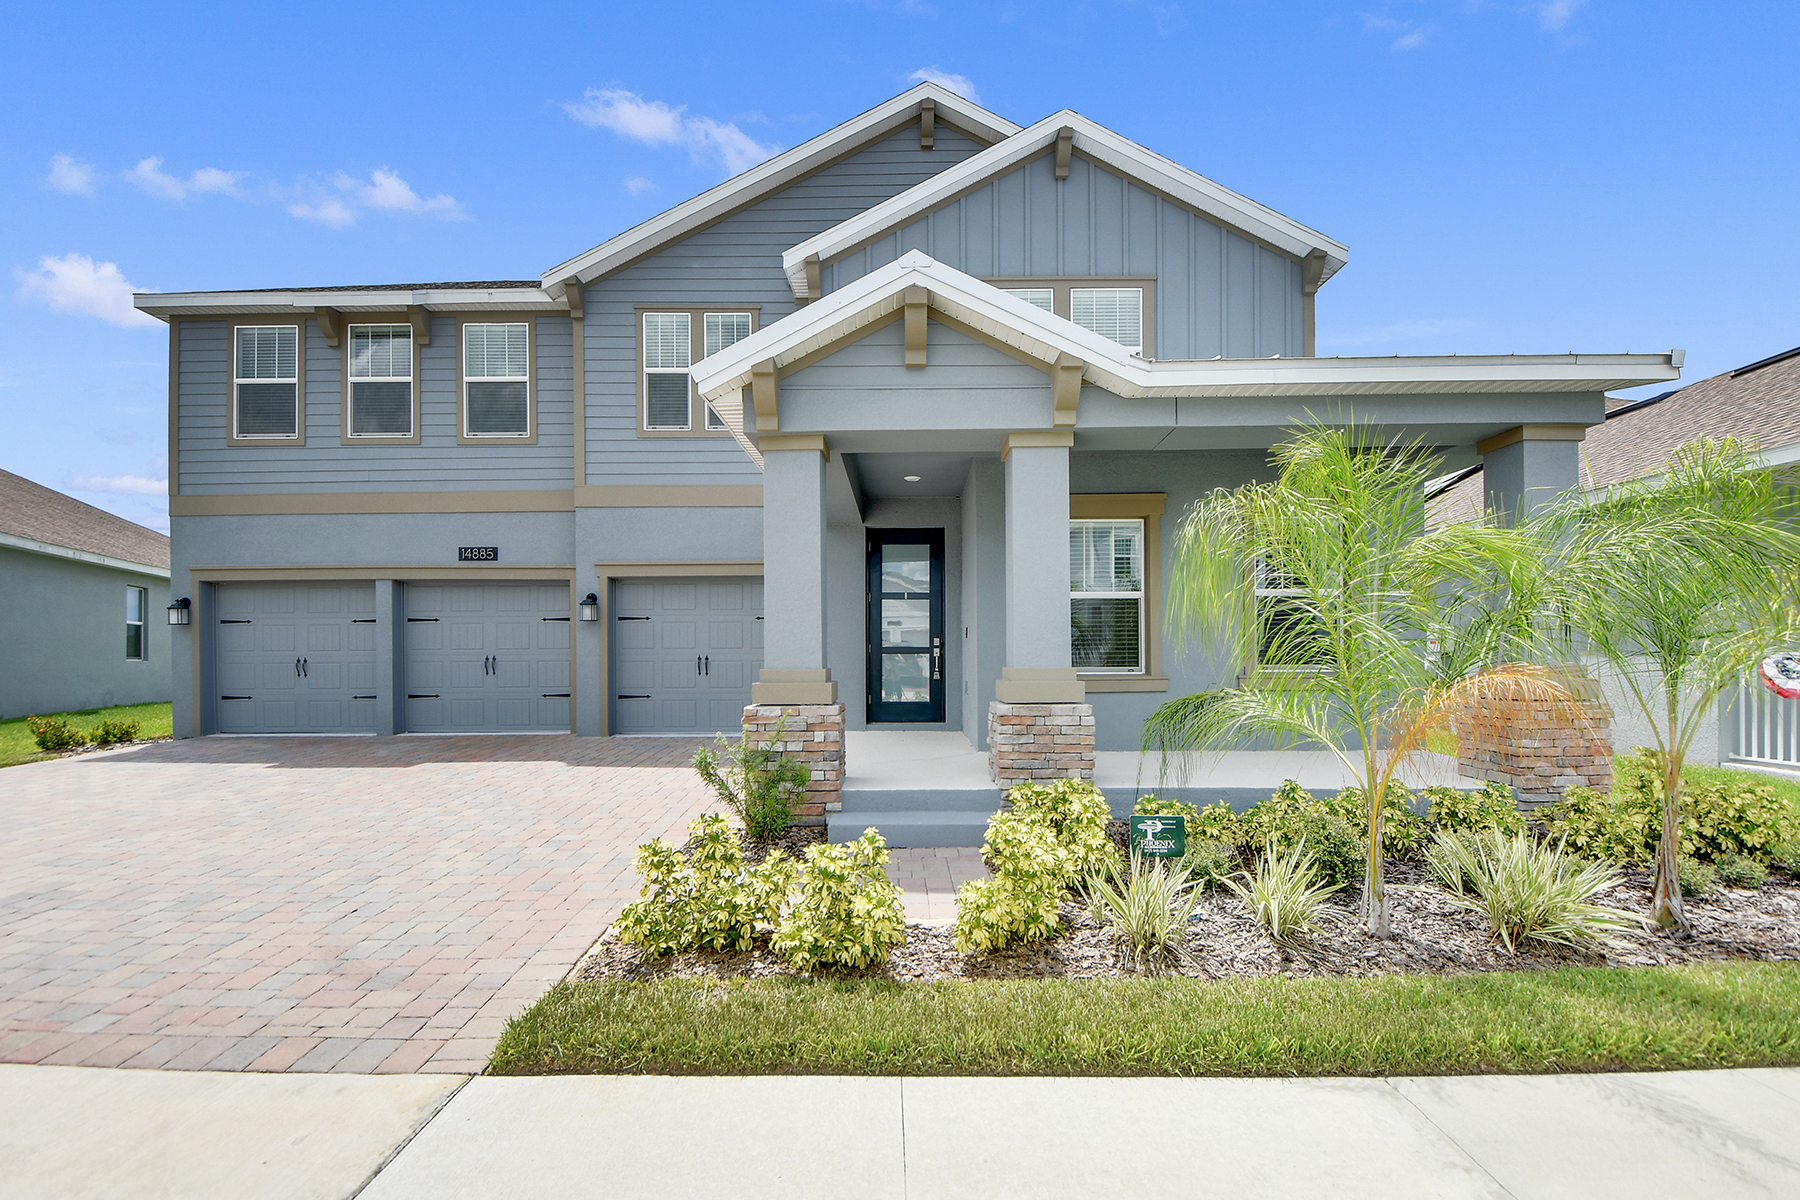 Single Family Homes for Sale at Winter Garden 14885 Winter Stay Dr Winter Garden, Florida 34787 United States